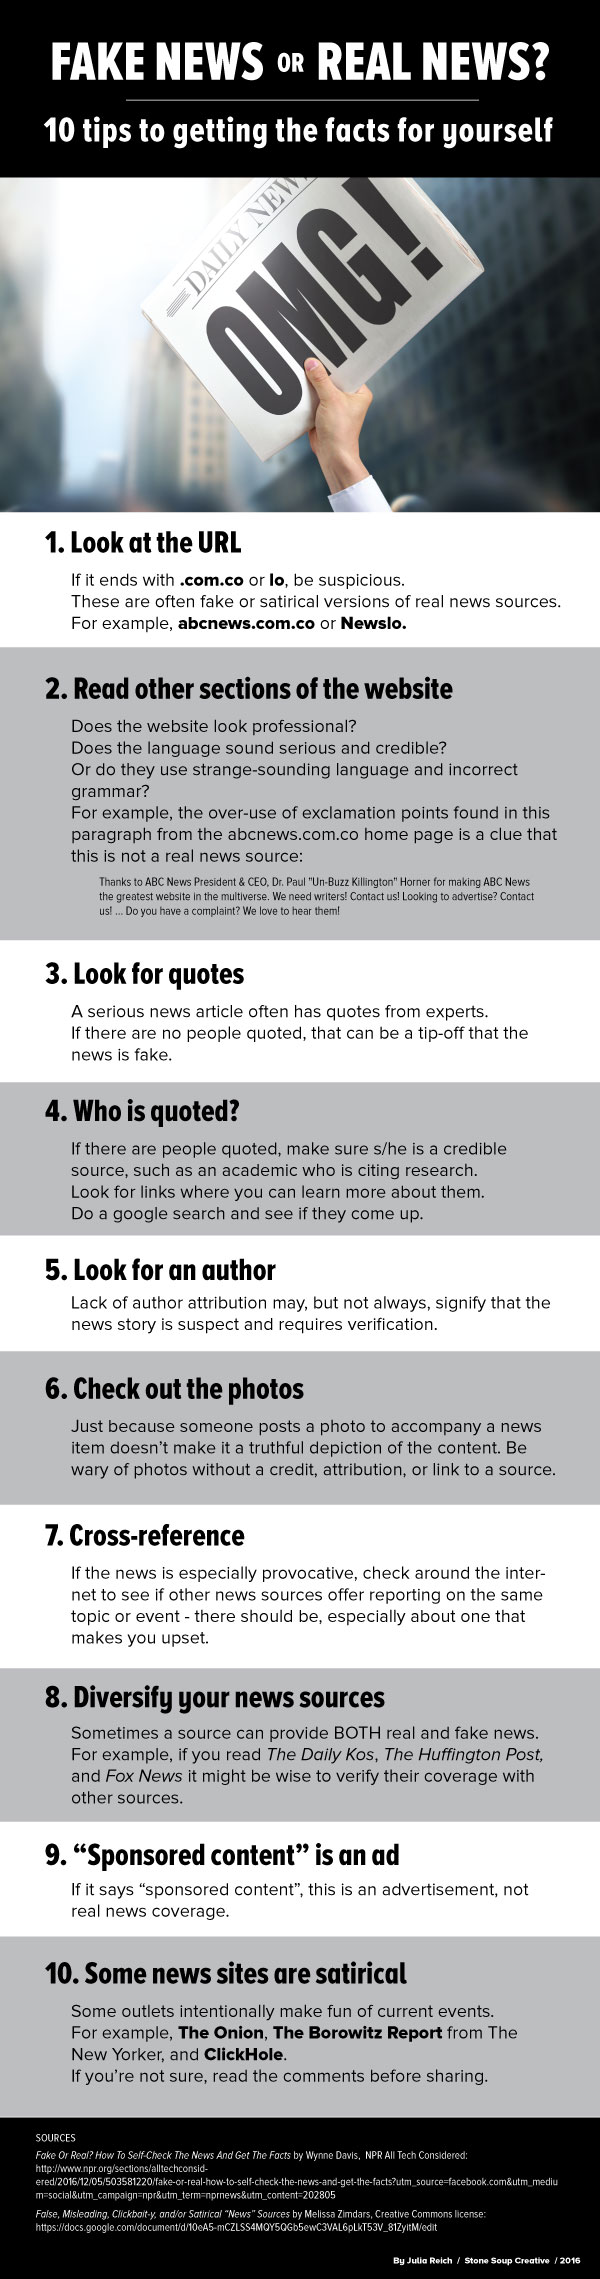 fake-news-or-real-news-infographic